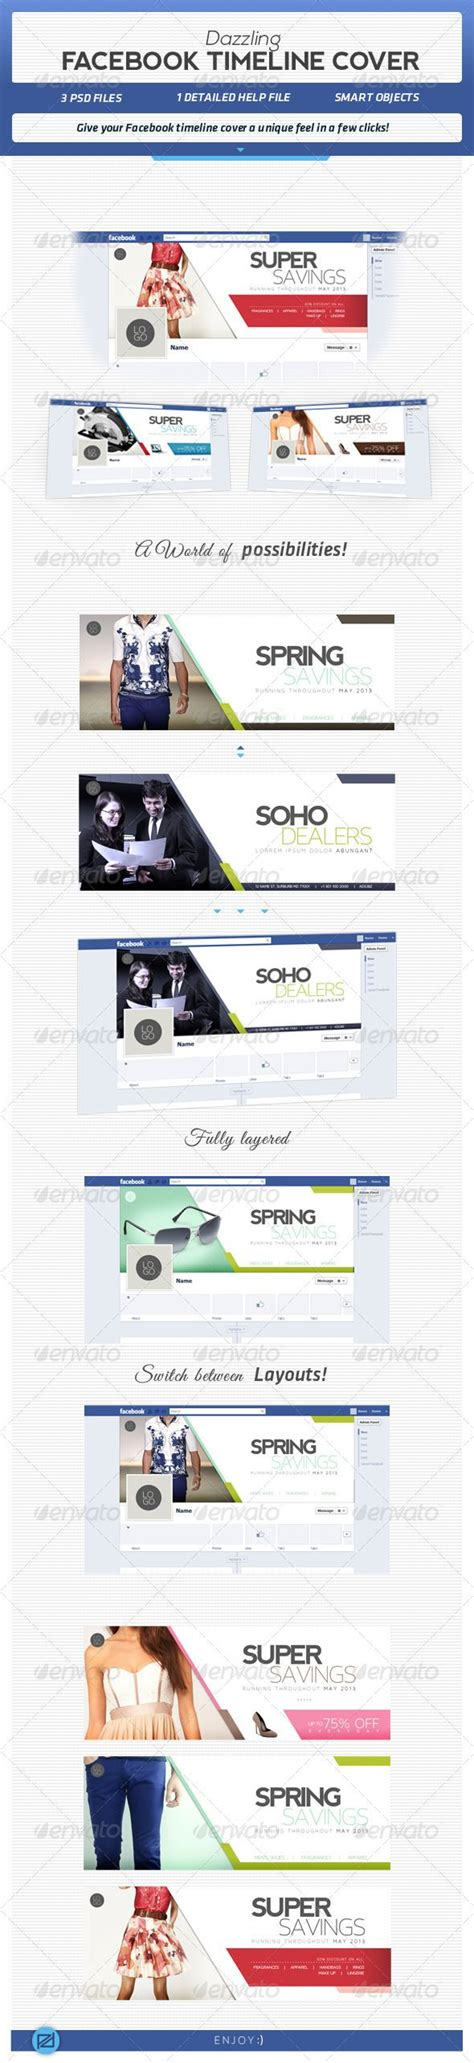 banners redes sociales template dazzling facebook covers facebook timeline covers social